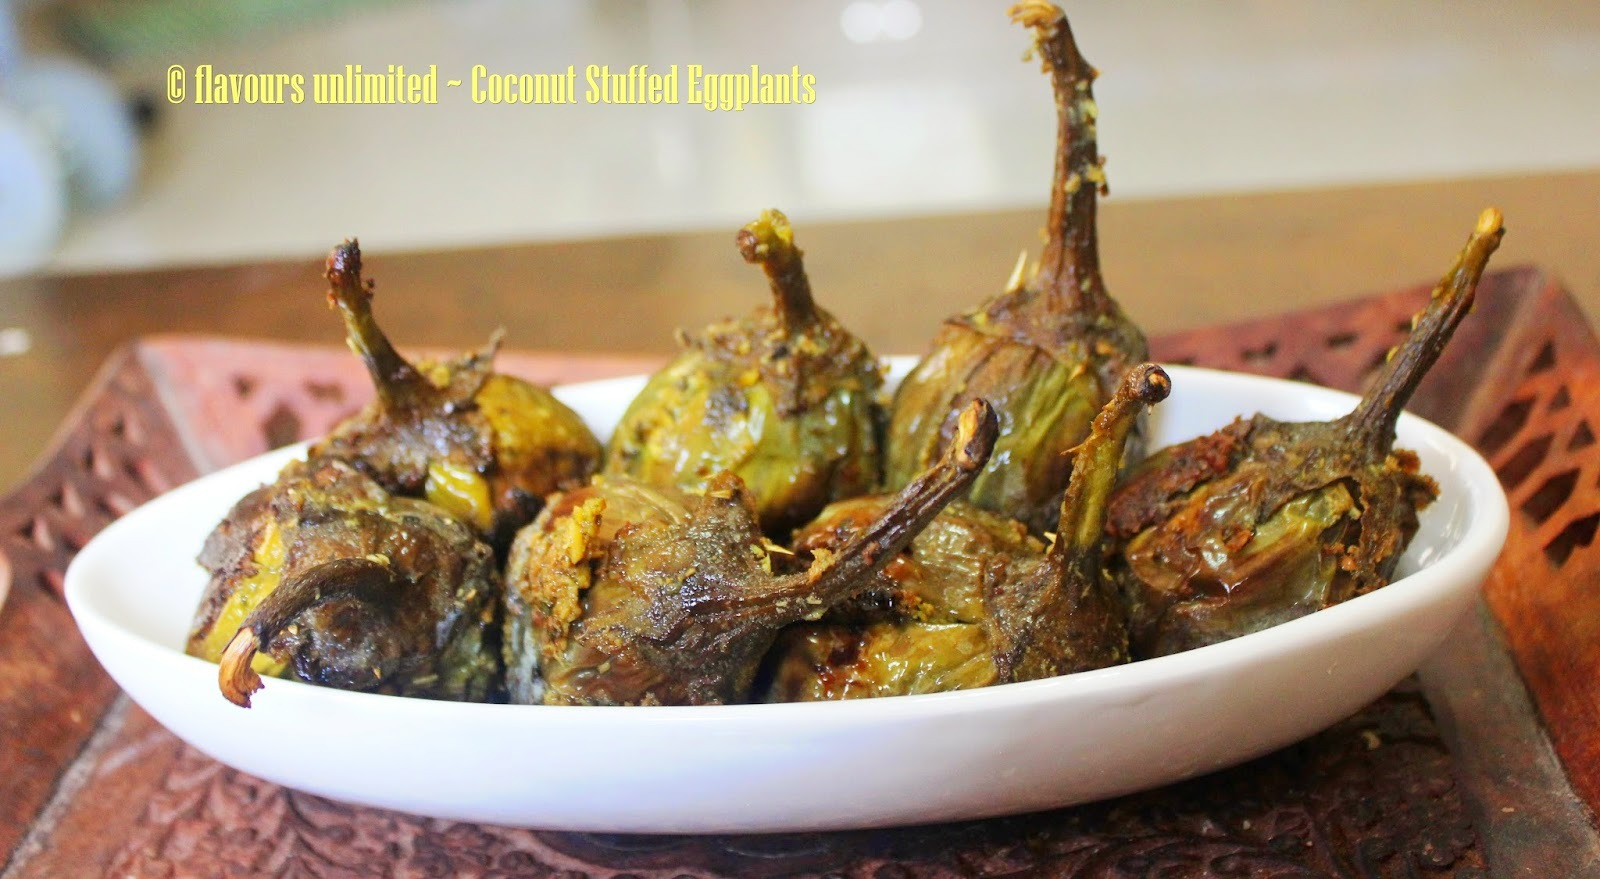 Eggplants Stuffed with Coconut n Pickling Spices